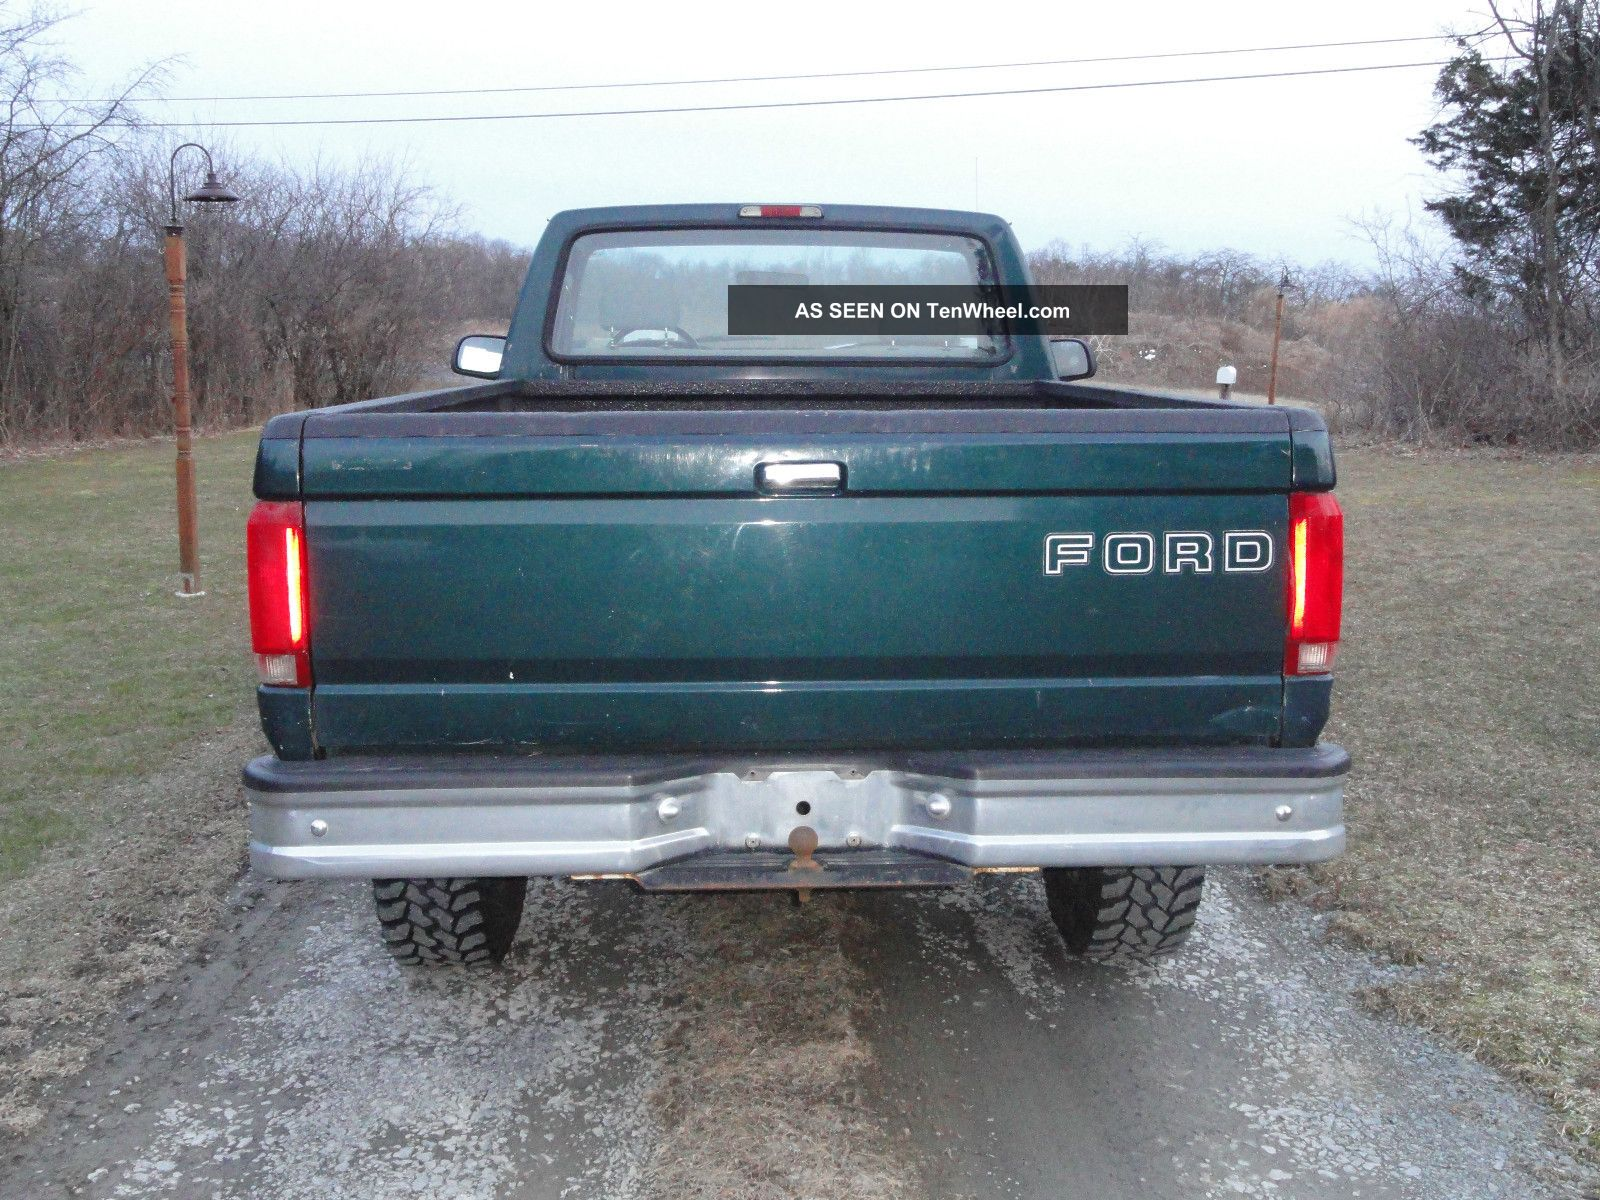 Ford f-250 1994 photo - 4